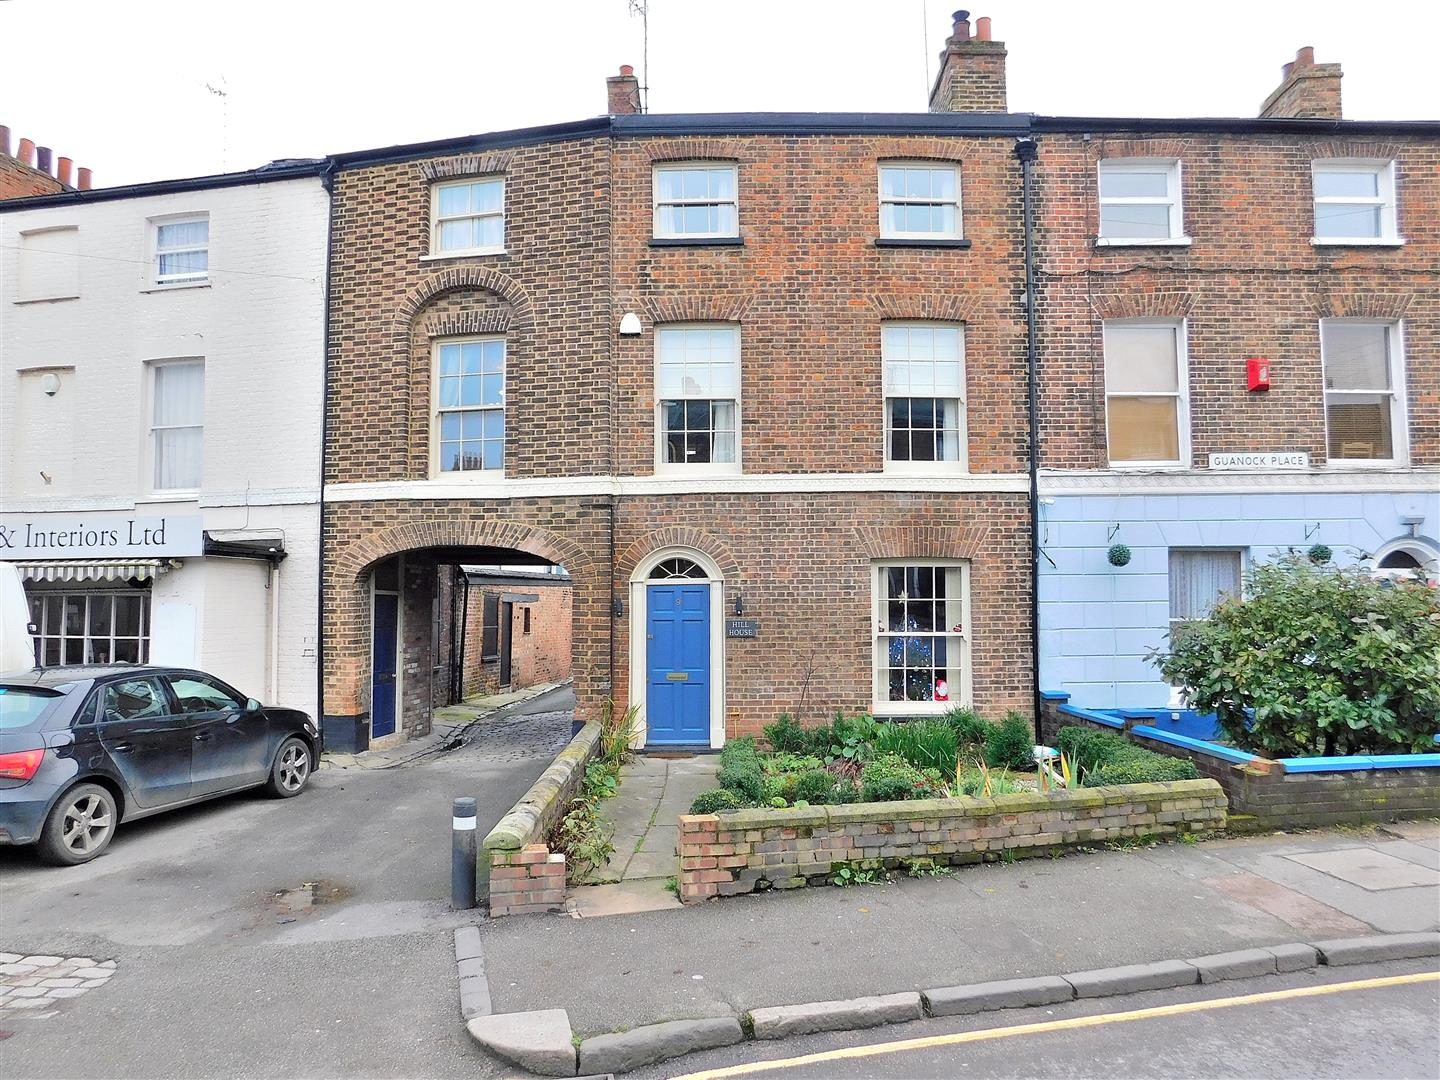 3 bed terraced house for sale in King's Lynn, PE30 5QJ  - Property Image 1